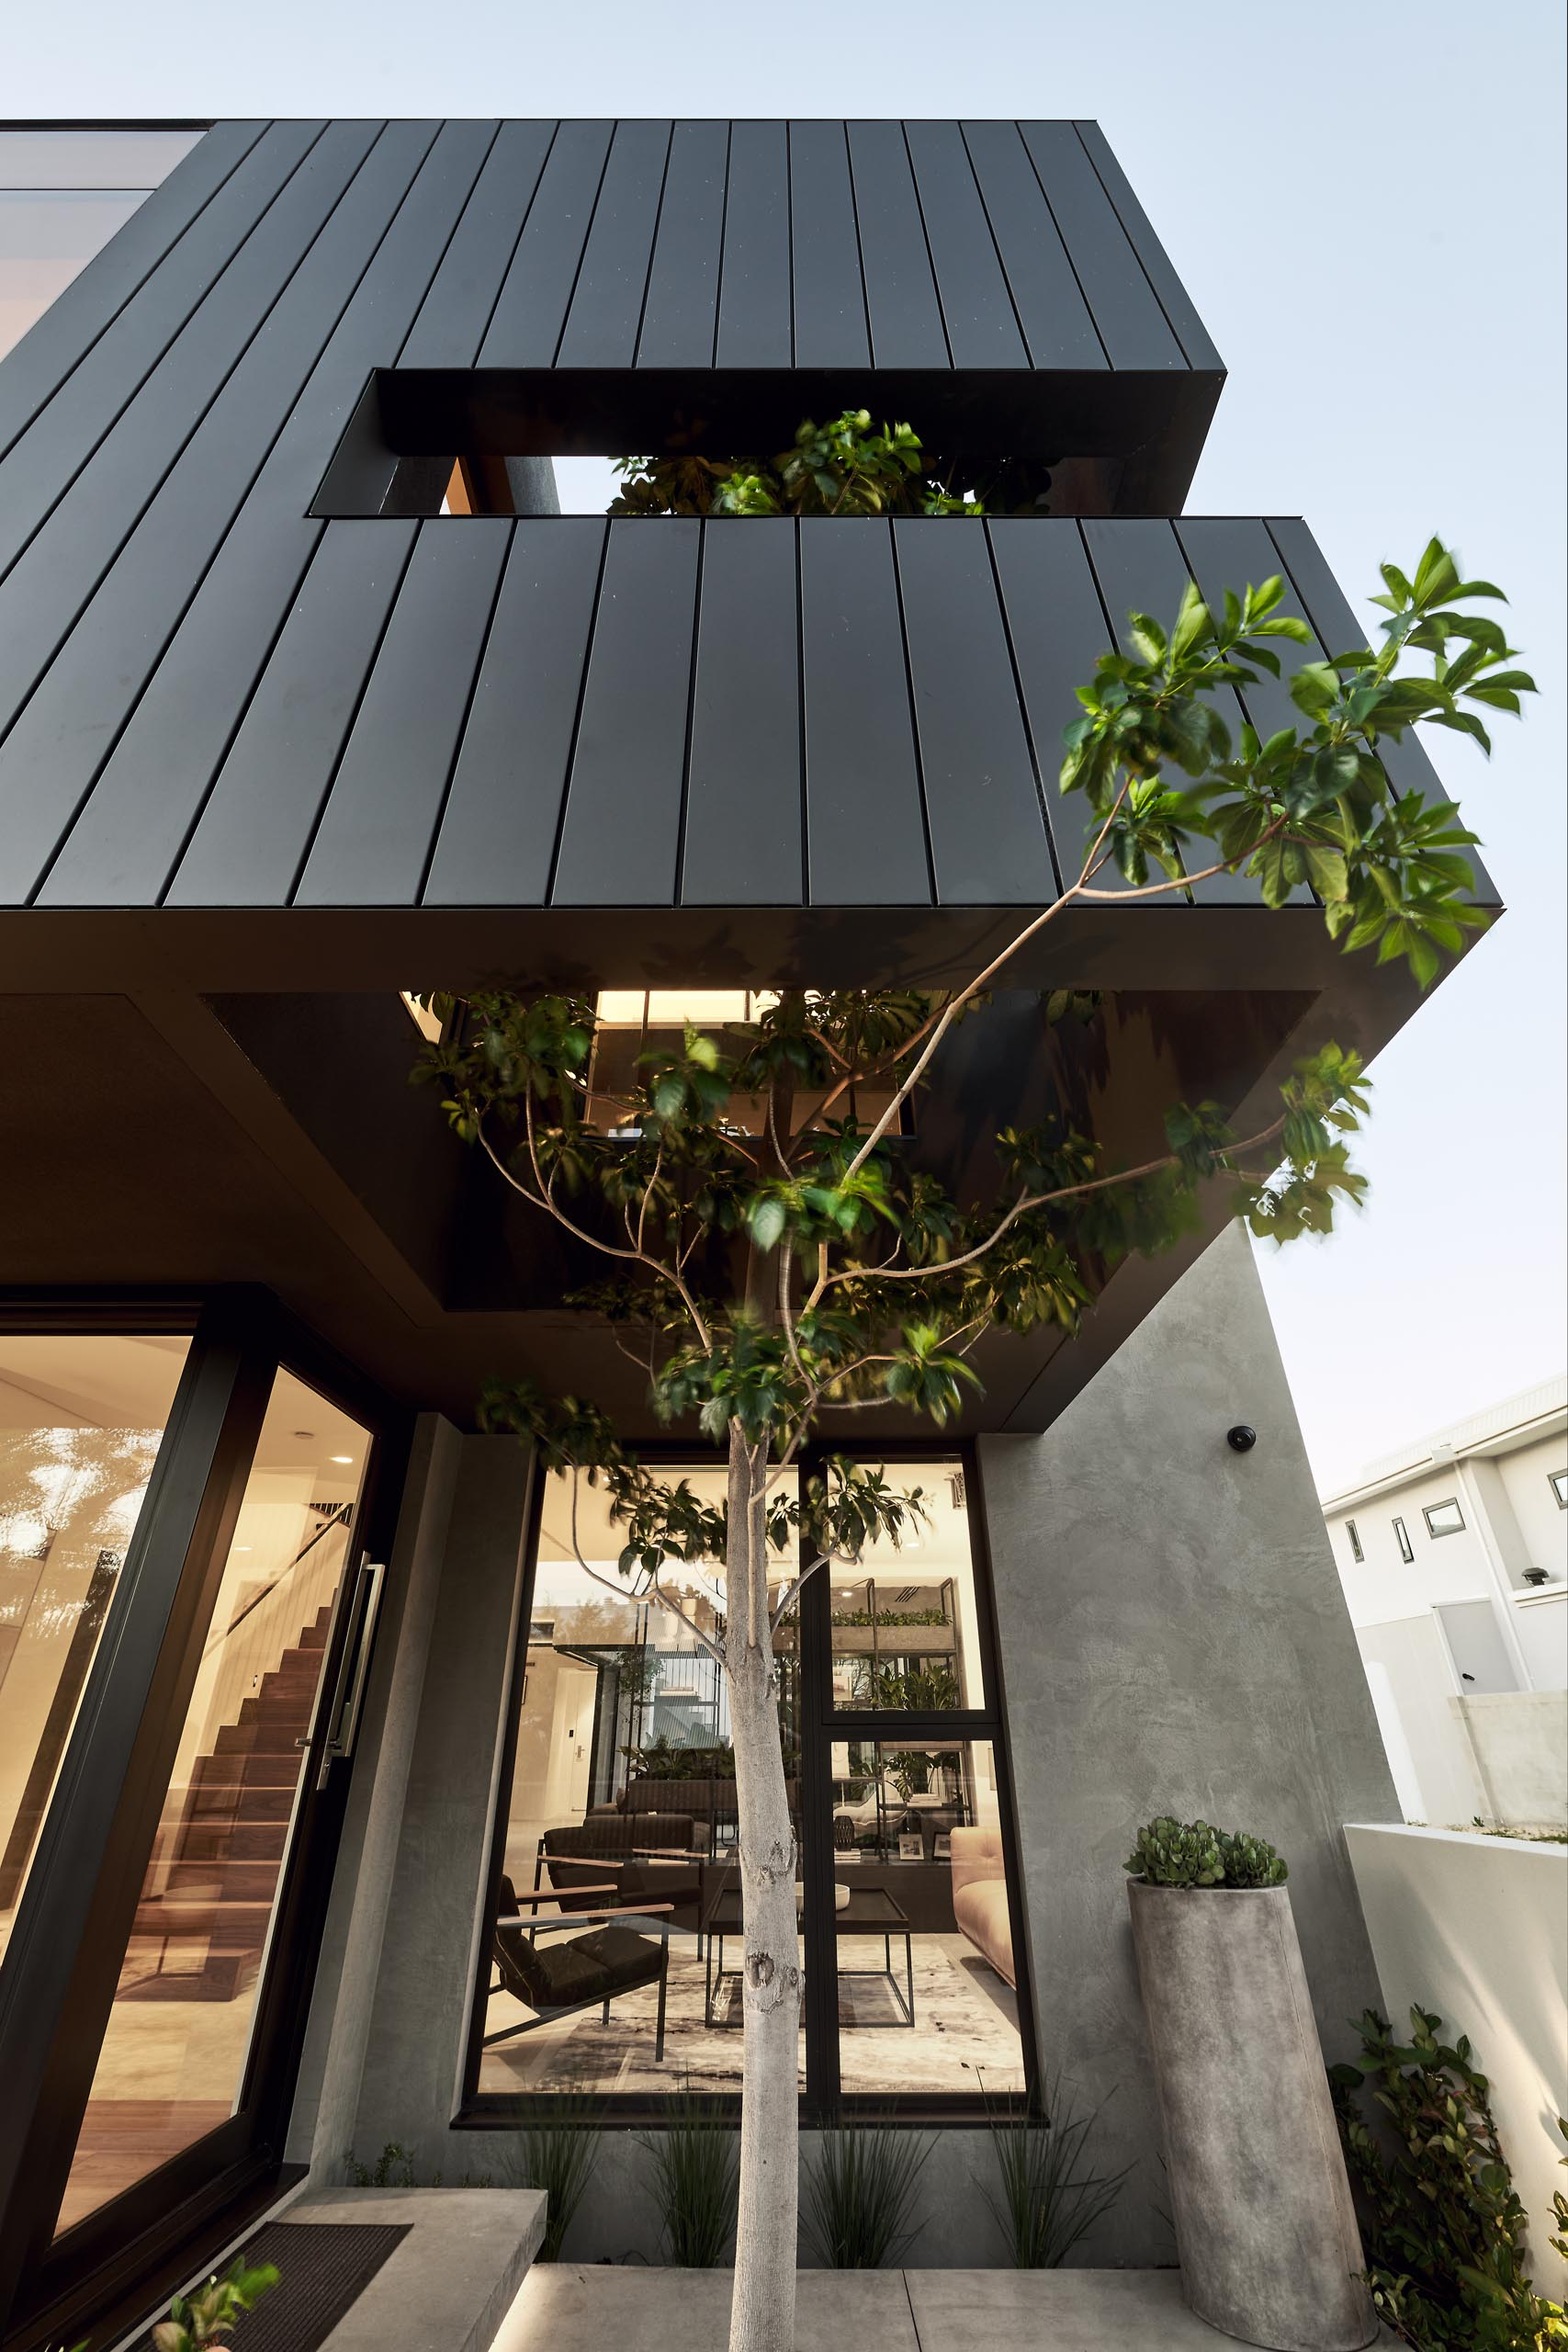 Within the matte black siding of this modern house, there's an opening to allow a tree to rise from within.